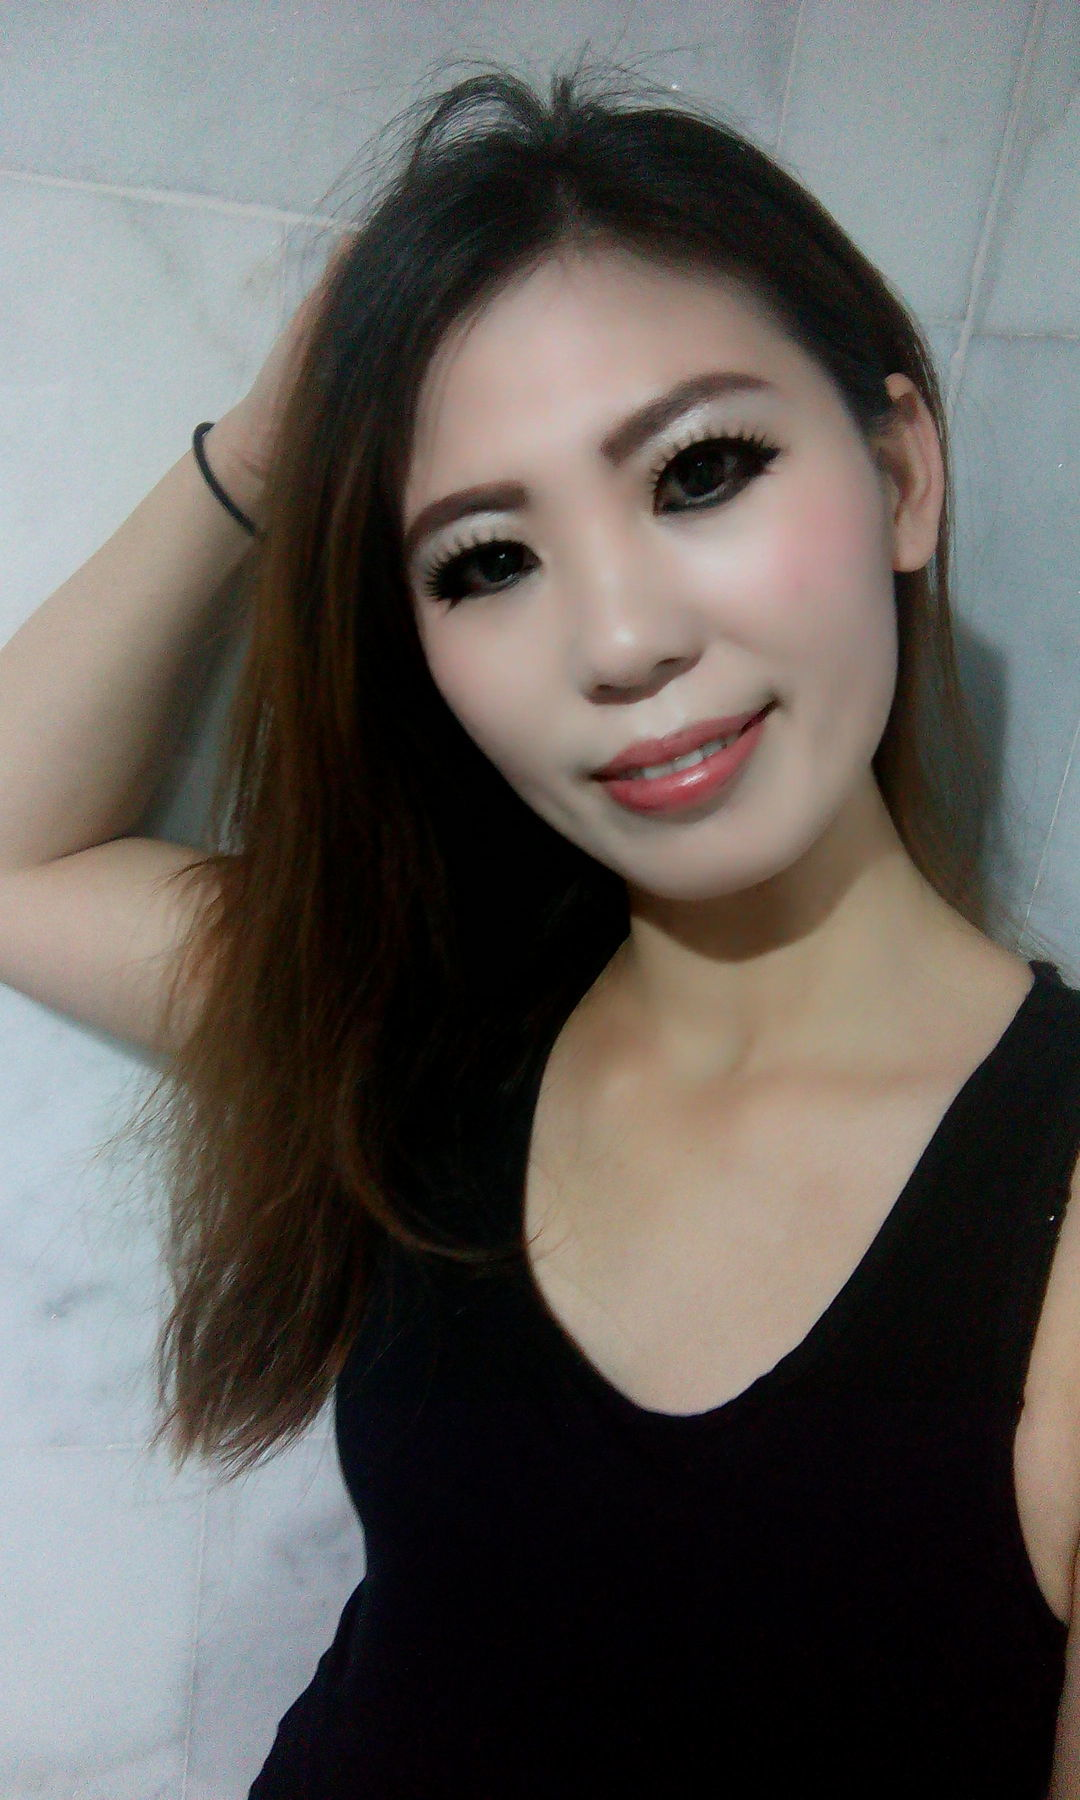 chatcam female escort service